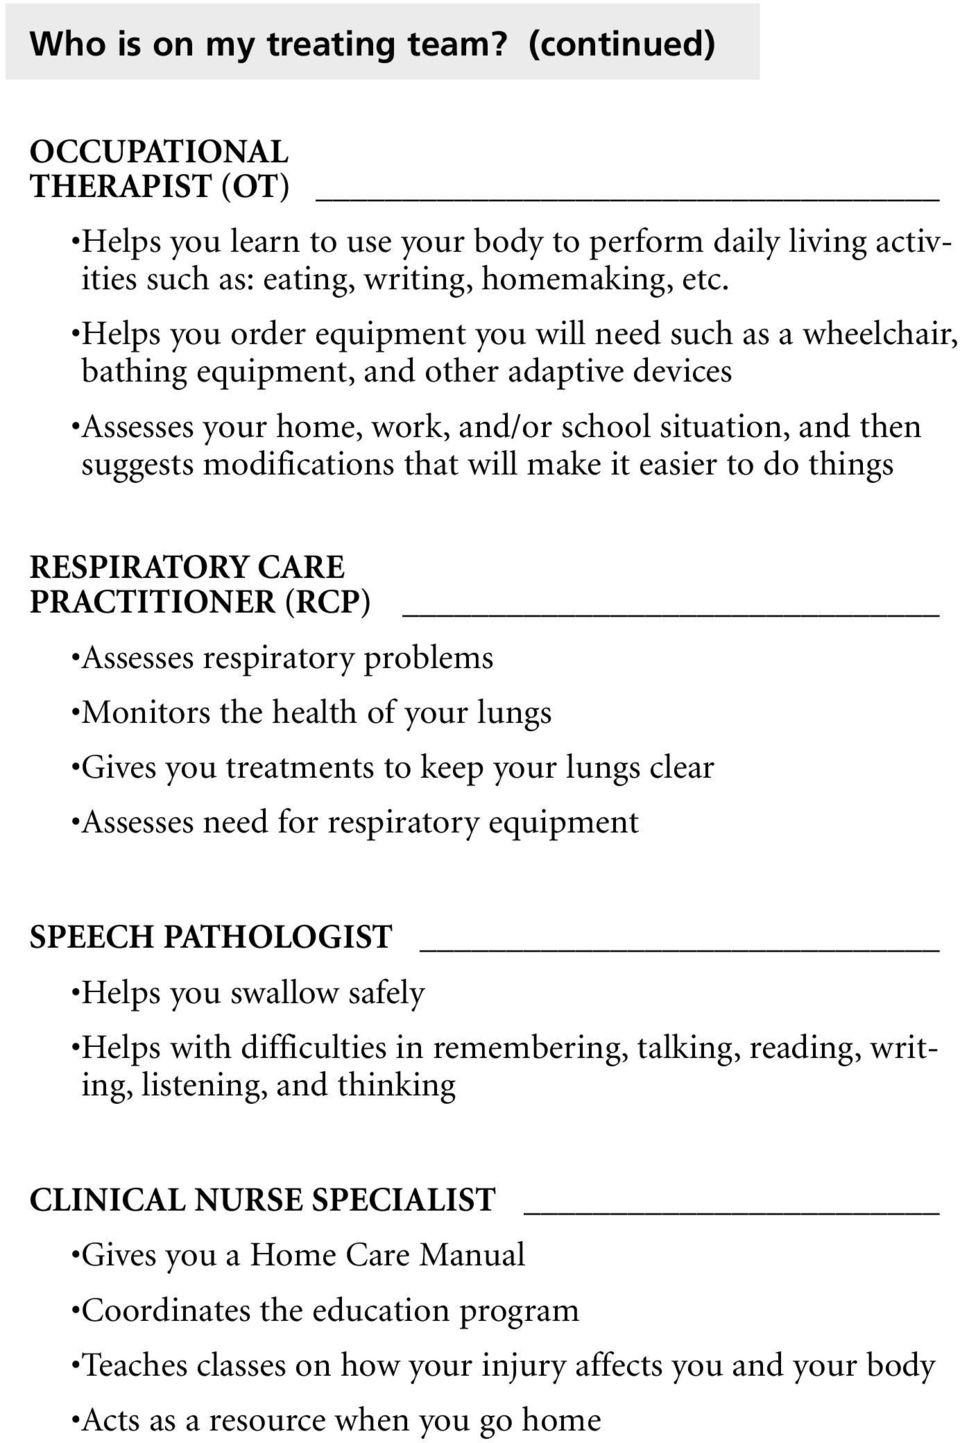 will make it easier to do things RESPIRATORY CARE PRACTITIONER (RCP) Assesses respiratory problems Monitors the health of your lungs Gives you treatments to keep your lungs clear Assesses need for